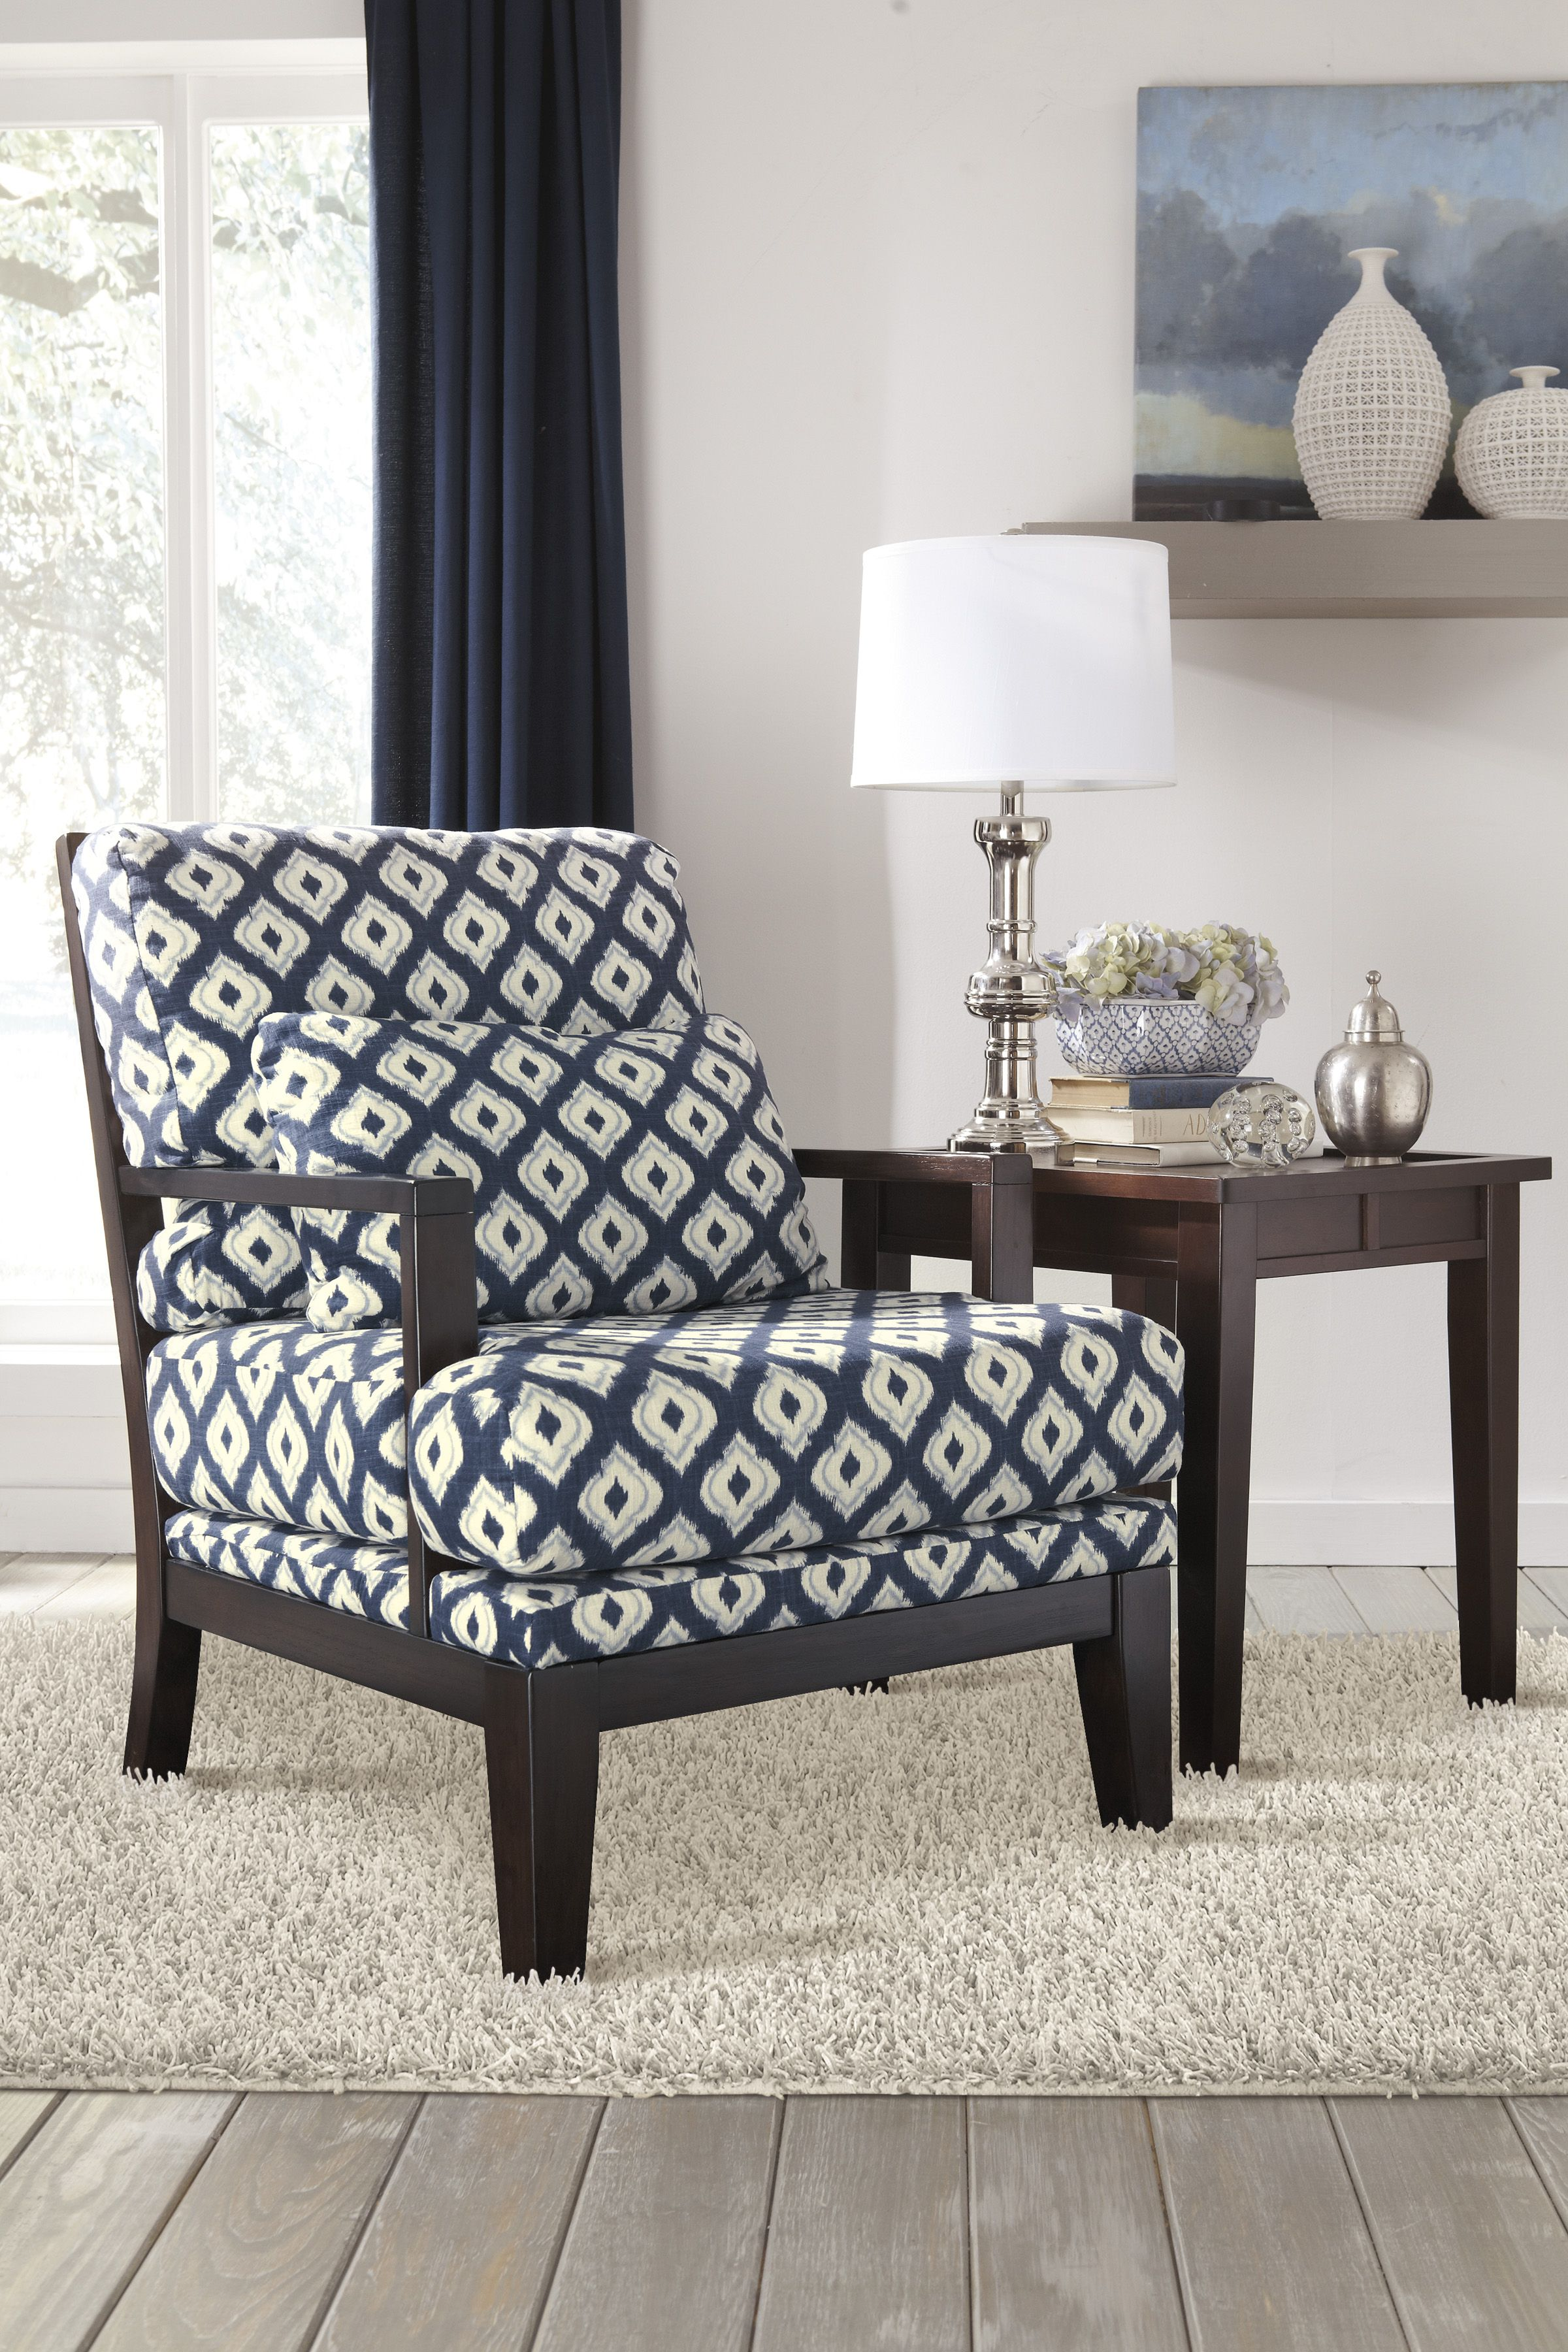 in by Ashley Furniture in Wichita KS Showood Accent